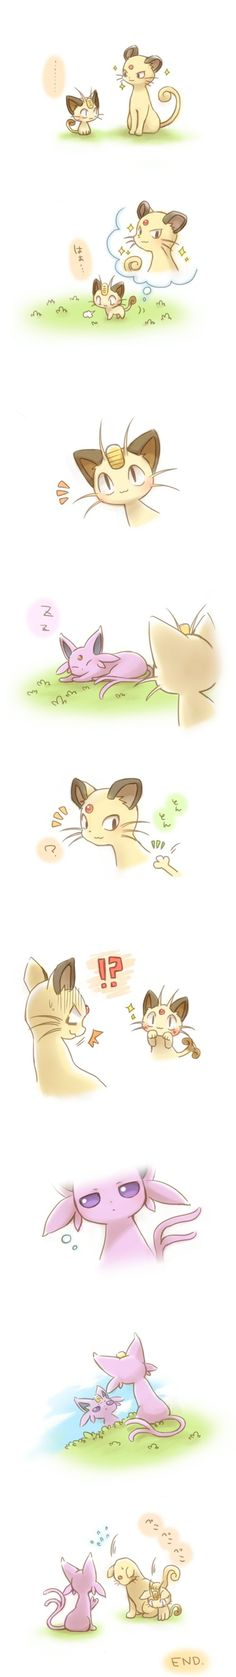 meowth wants to be like momma